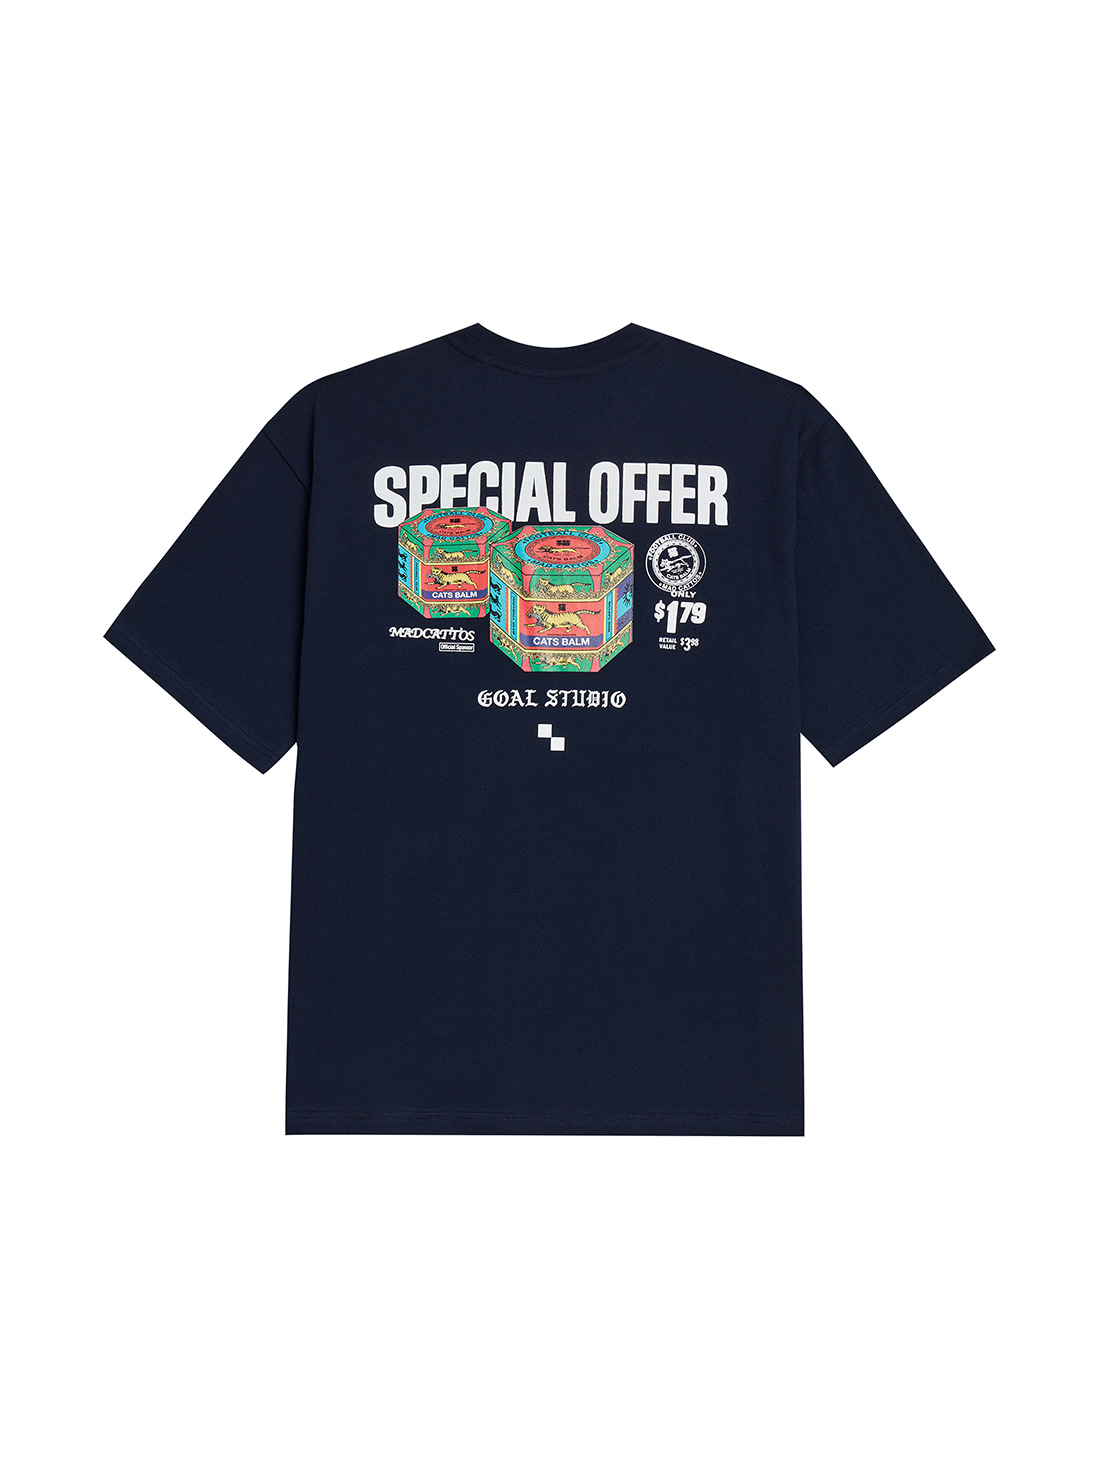 GOALSTUDIO MC BALM GRAPHIC TEE - NAVY